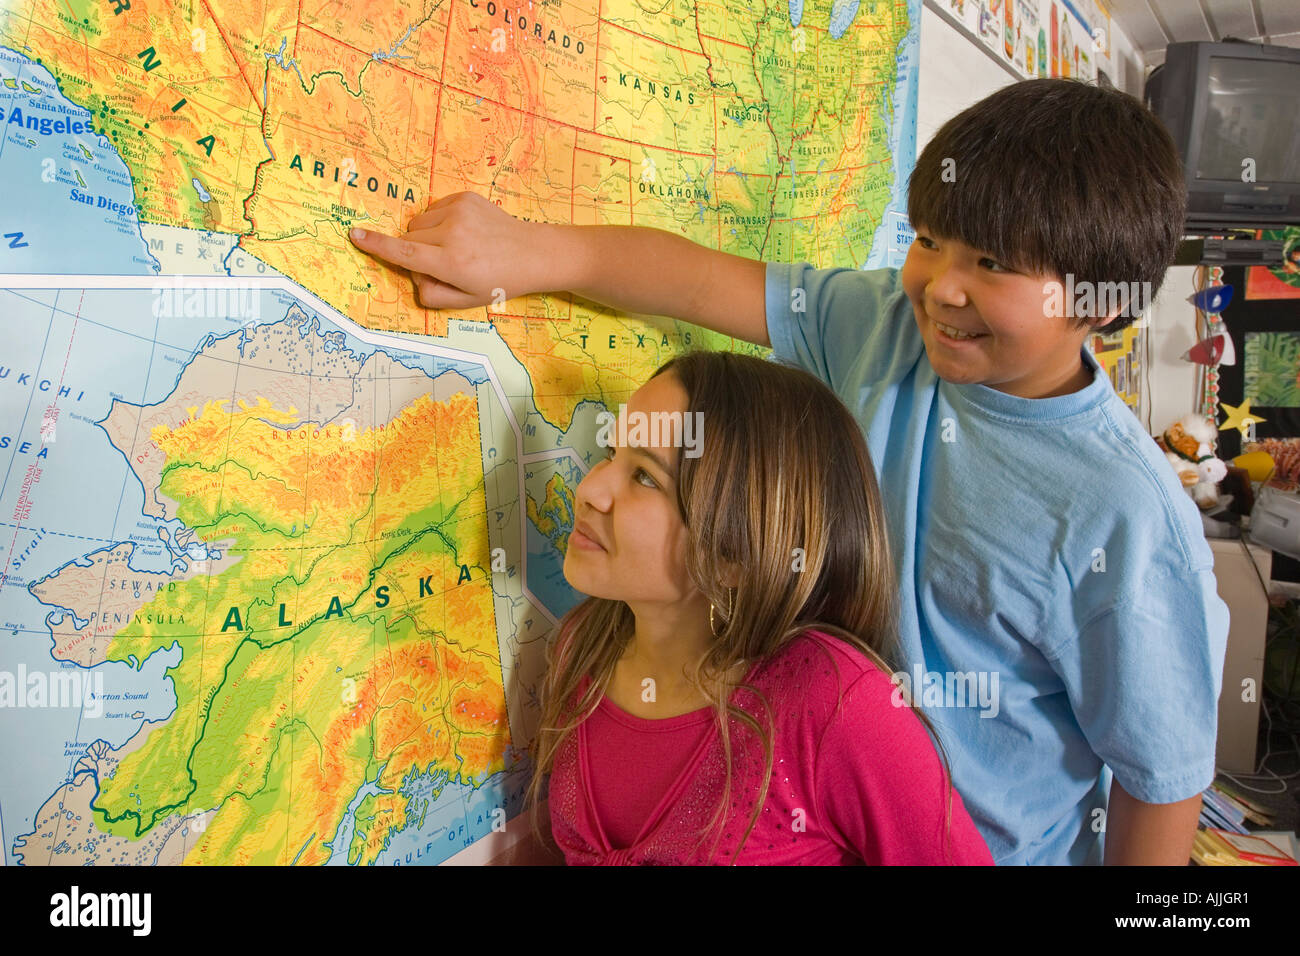 Alaskan Native Children In Classroom Reading Map Together Inside - Map reading for children